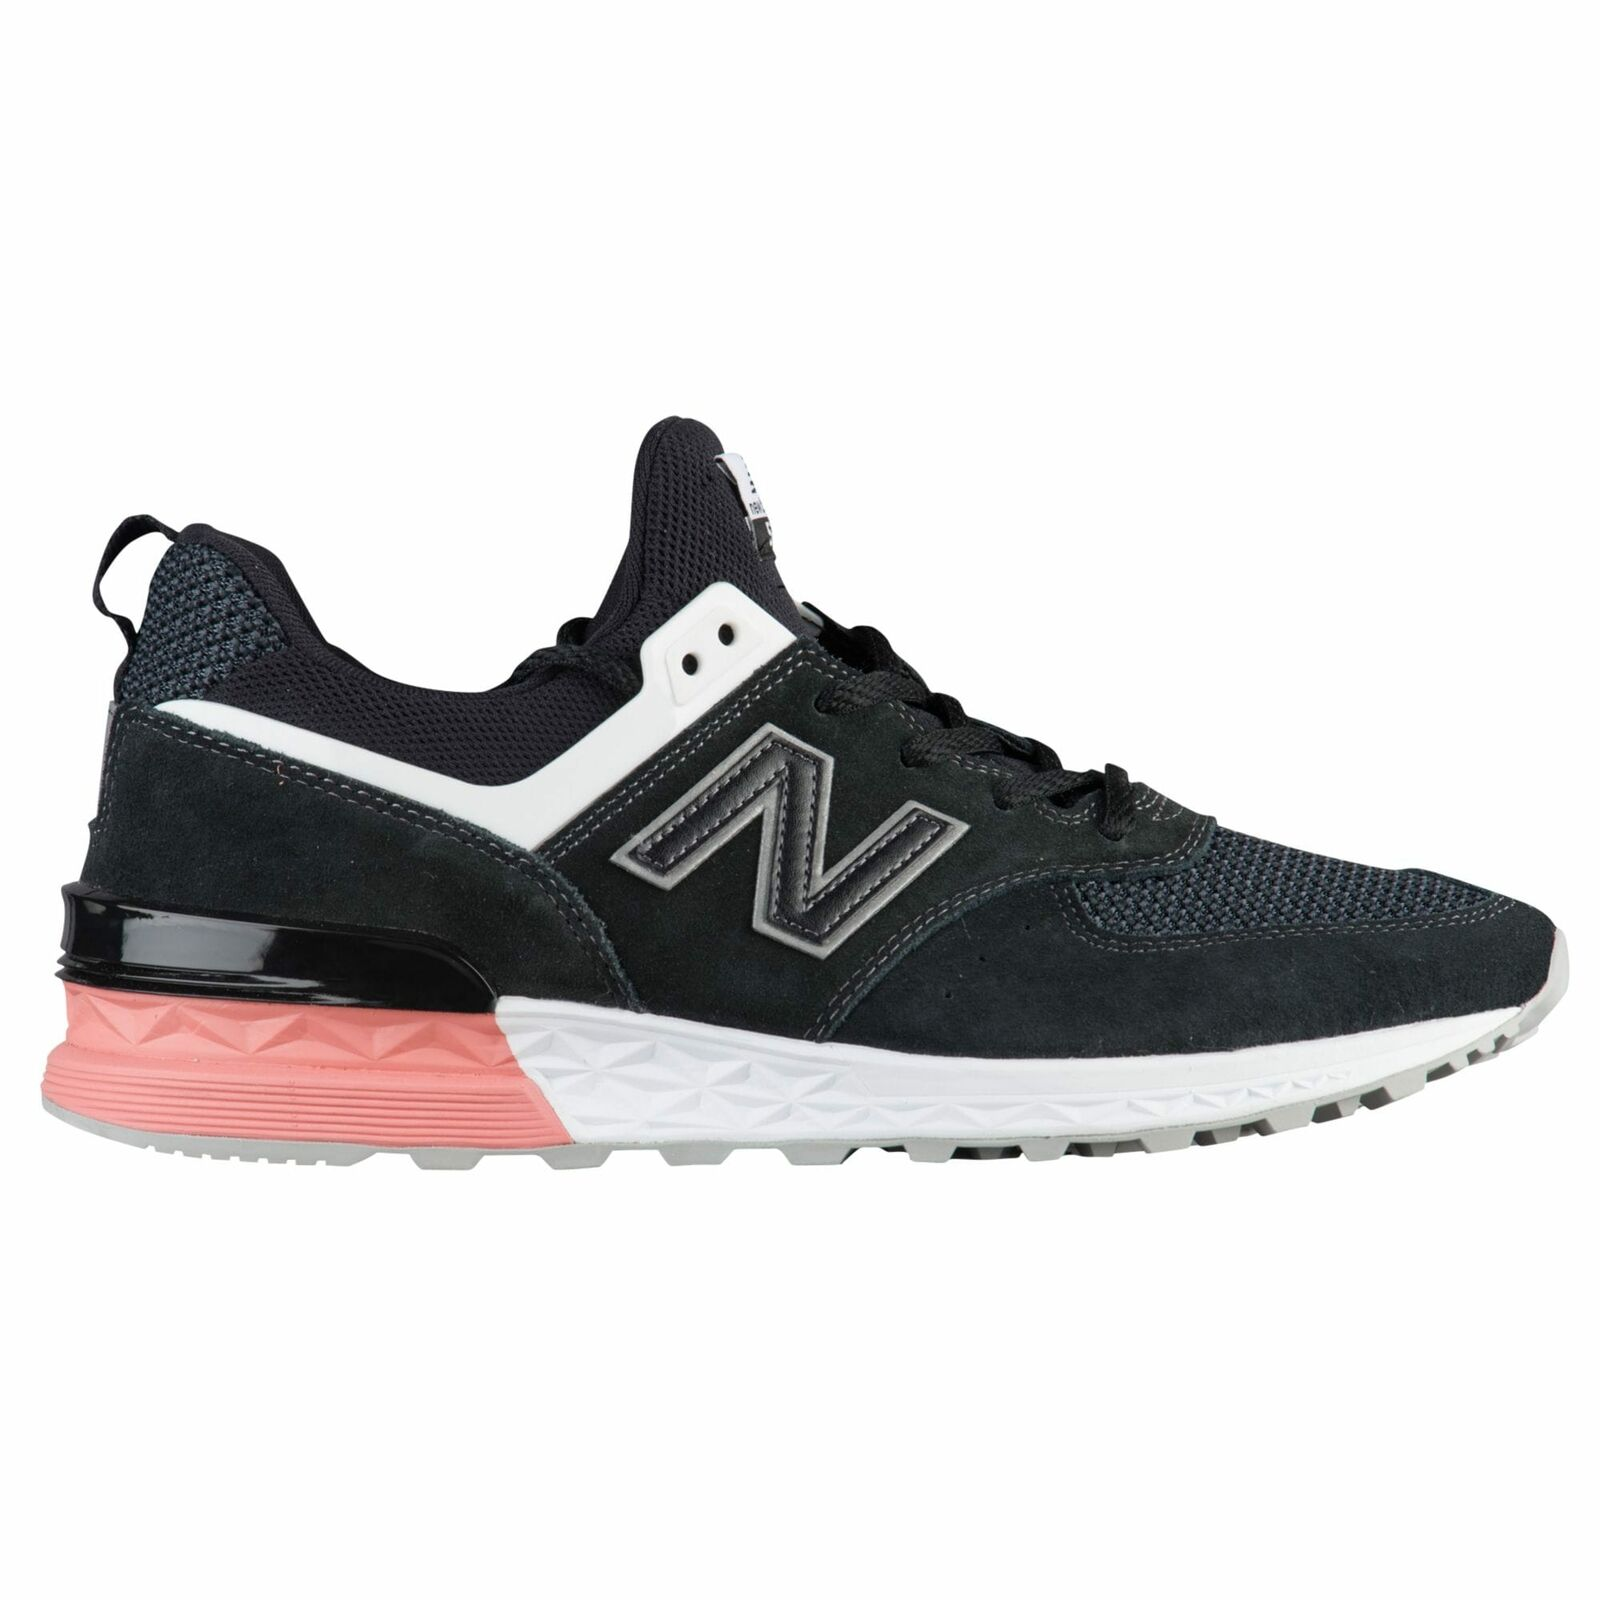 New Balance 574 Sport Men's Black Dusty Peach MS574STK